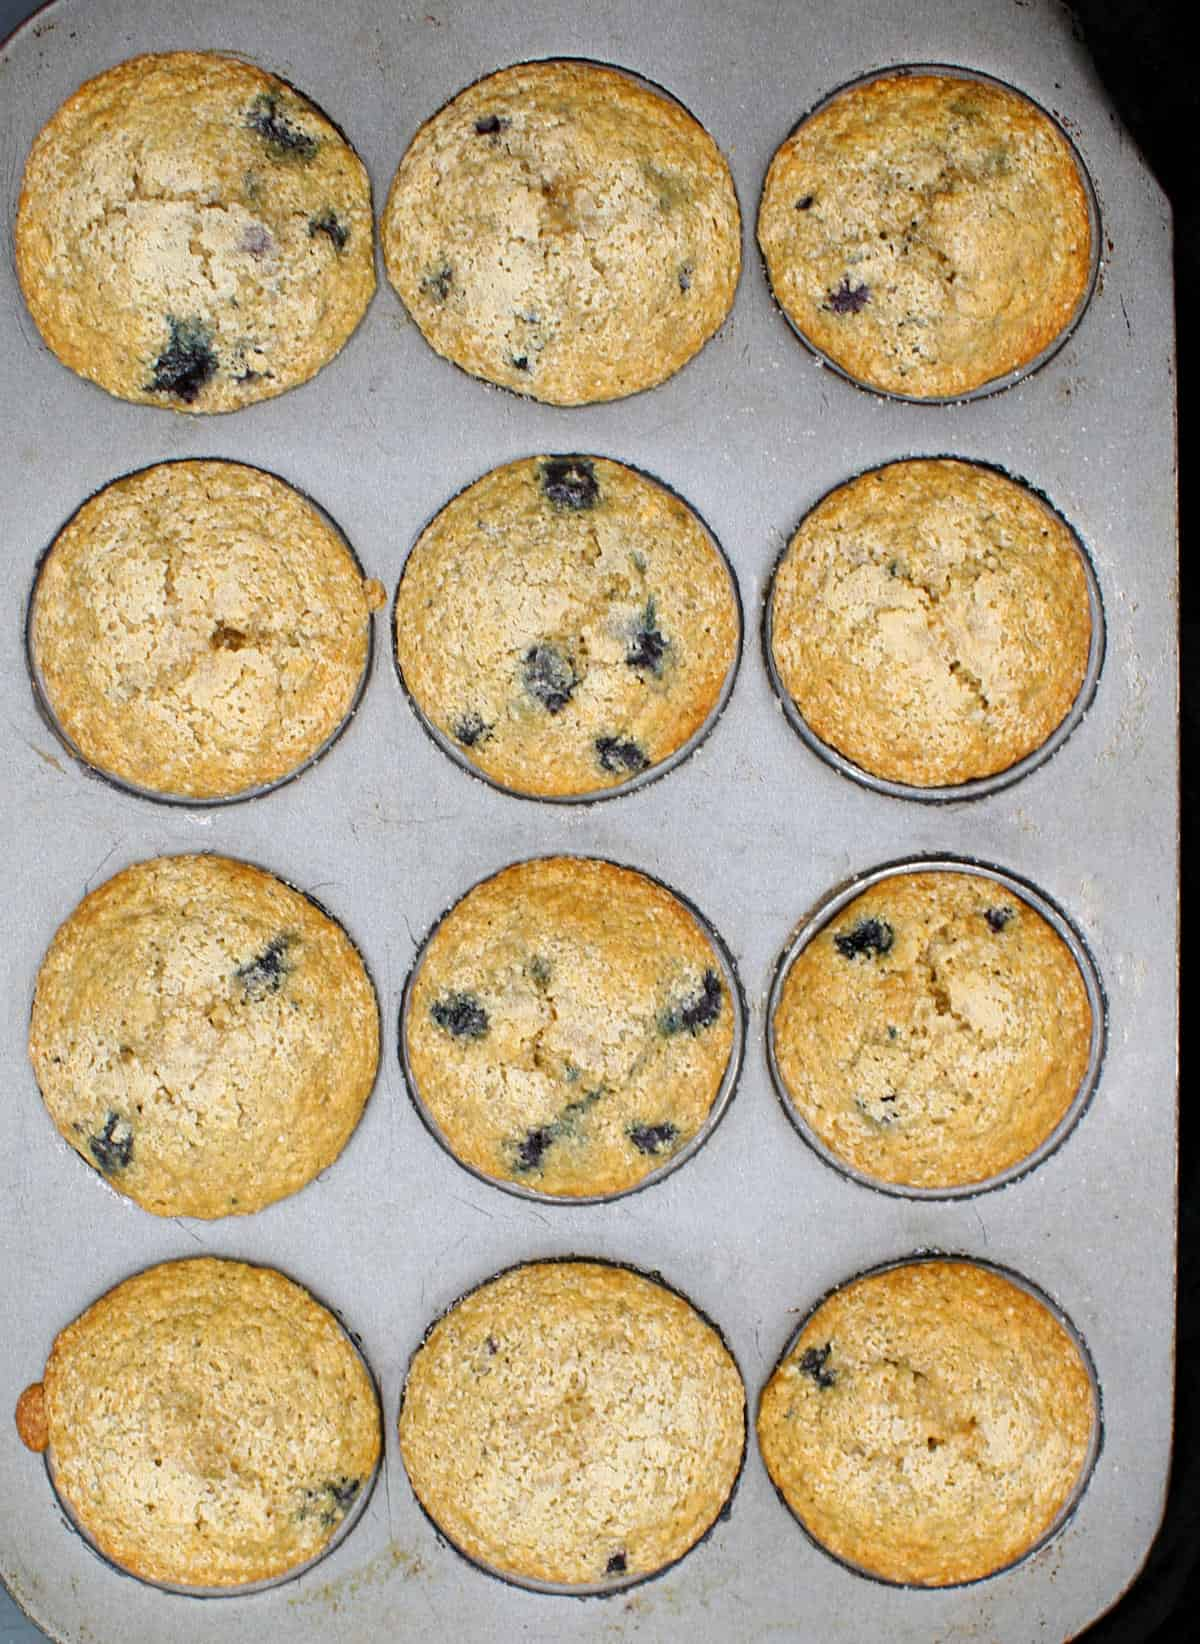 Overhead shot of blueberry vegan muffins in a baking pan.